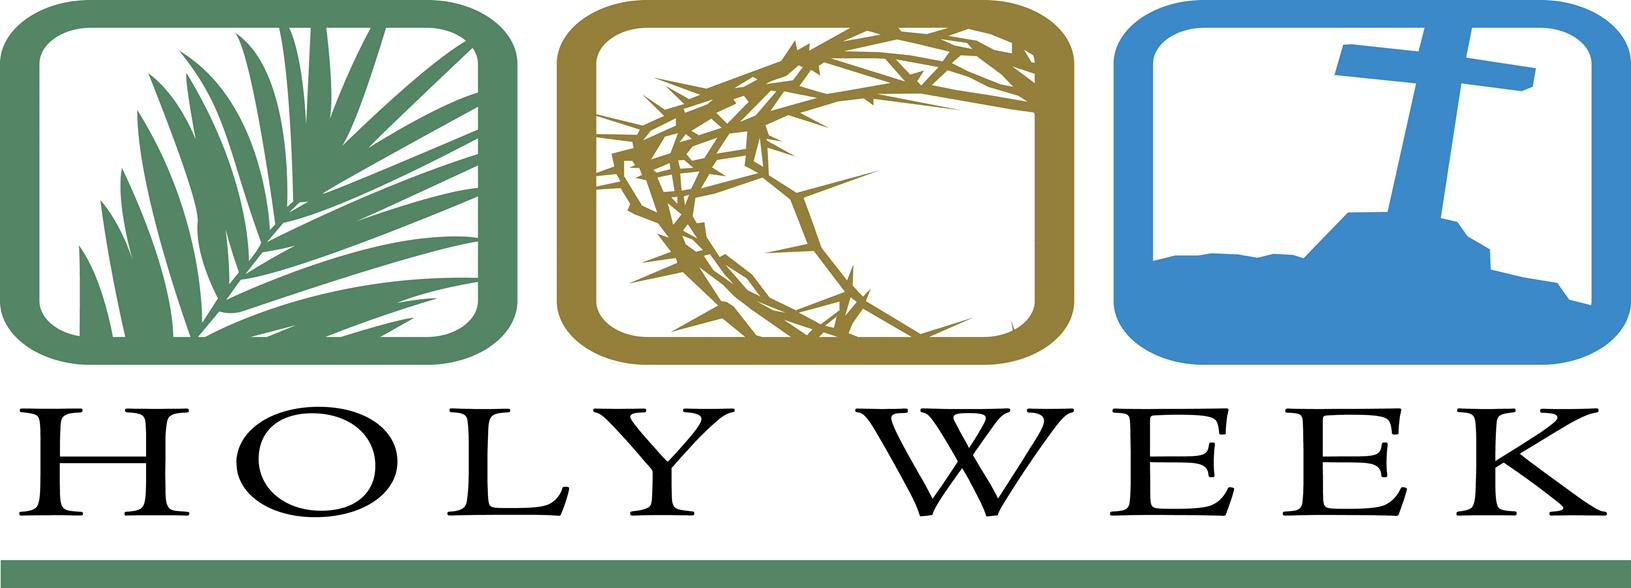 Clipart for facebook cover photo easter week clip free library 50 Beautiful Holy Week Wish Pictures And Images clip free library